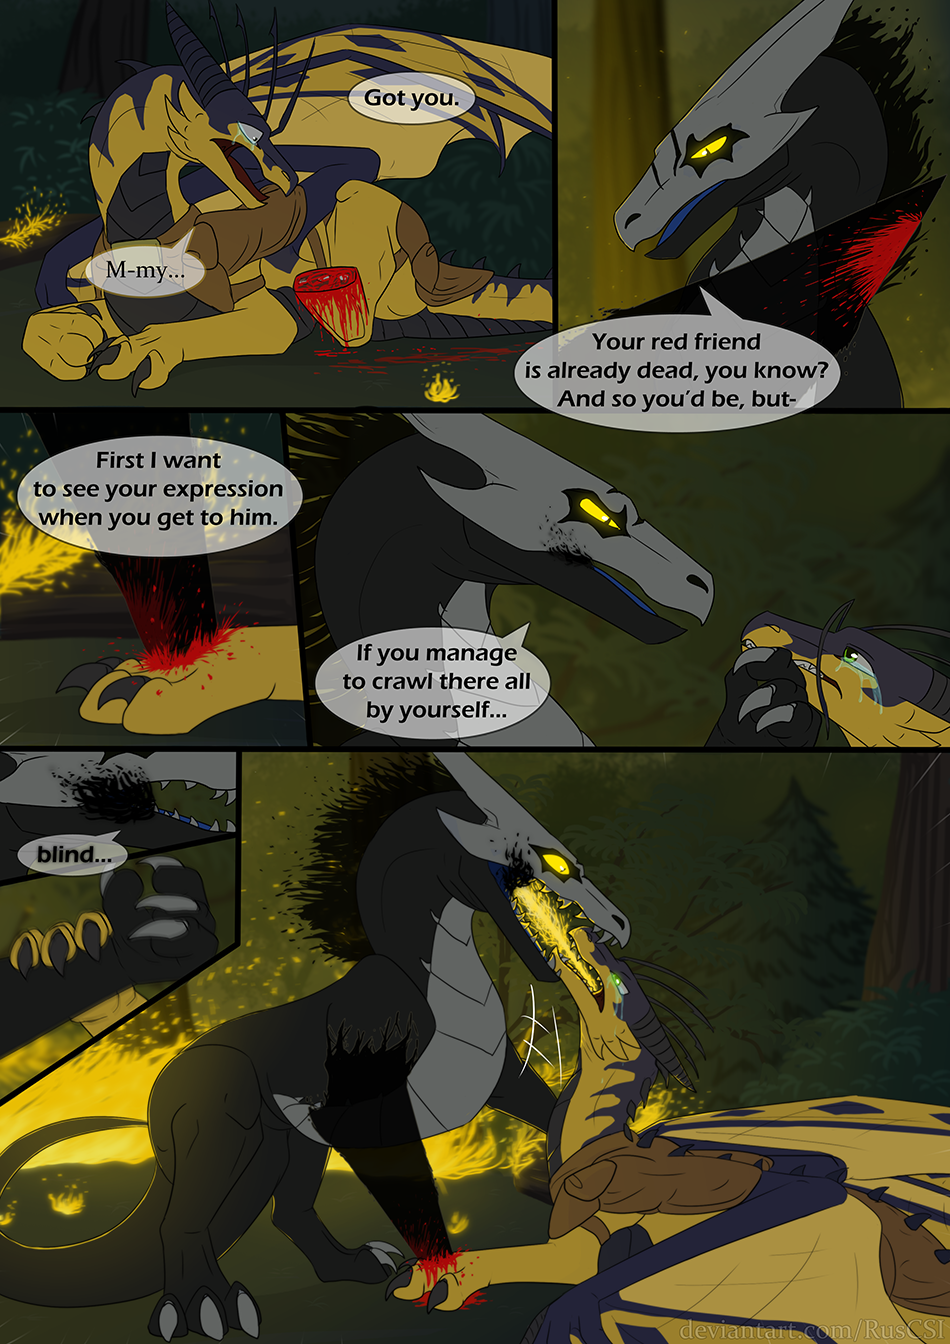 Courage of the cowardly dragon - page 49